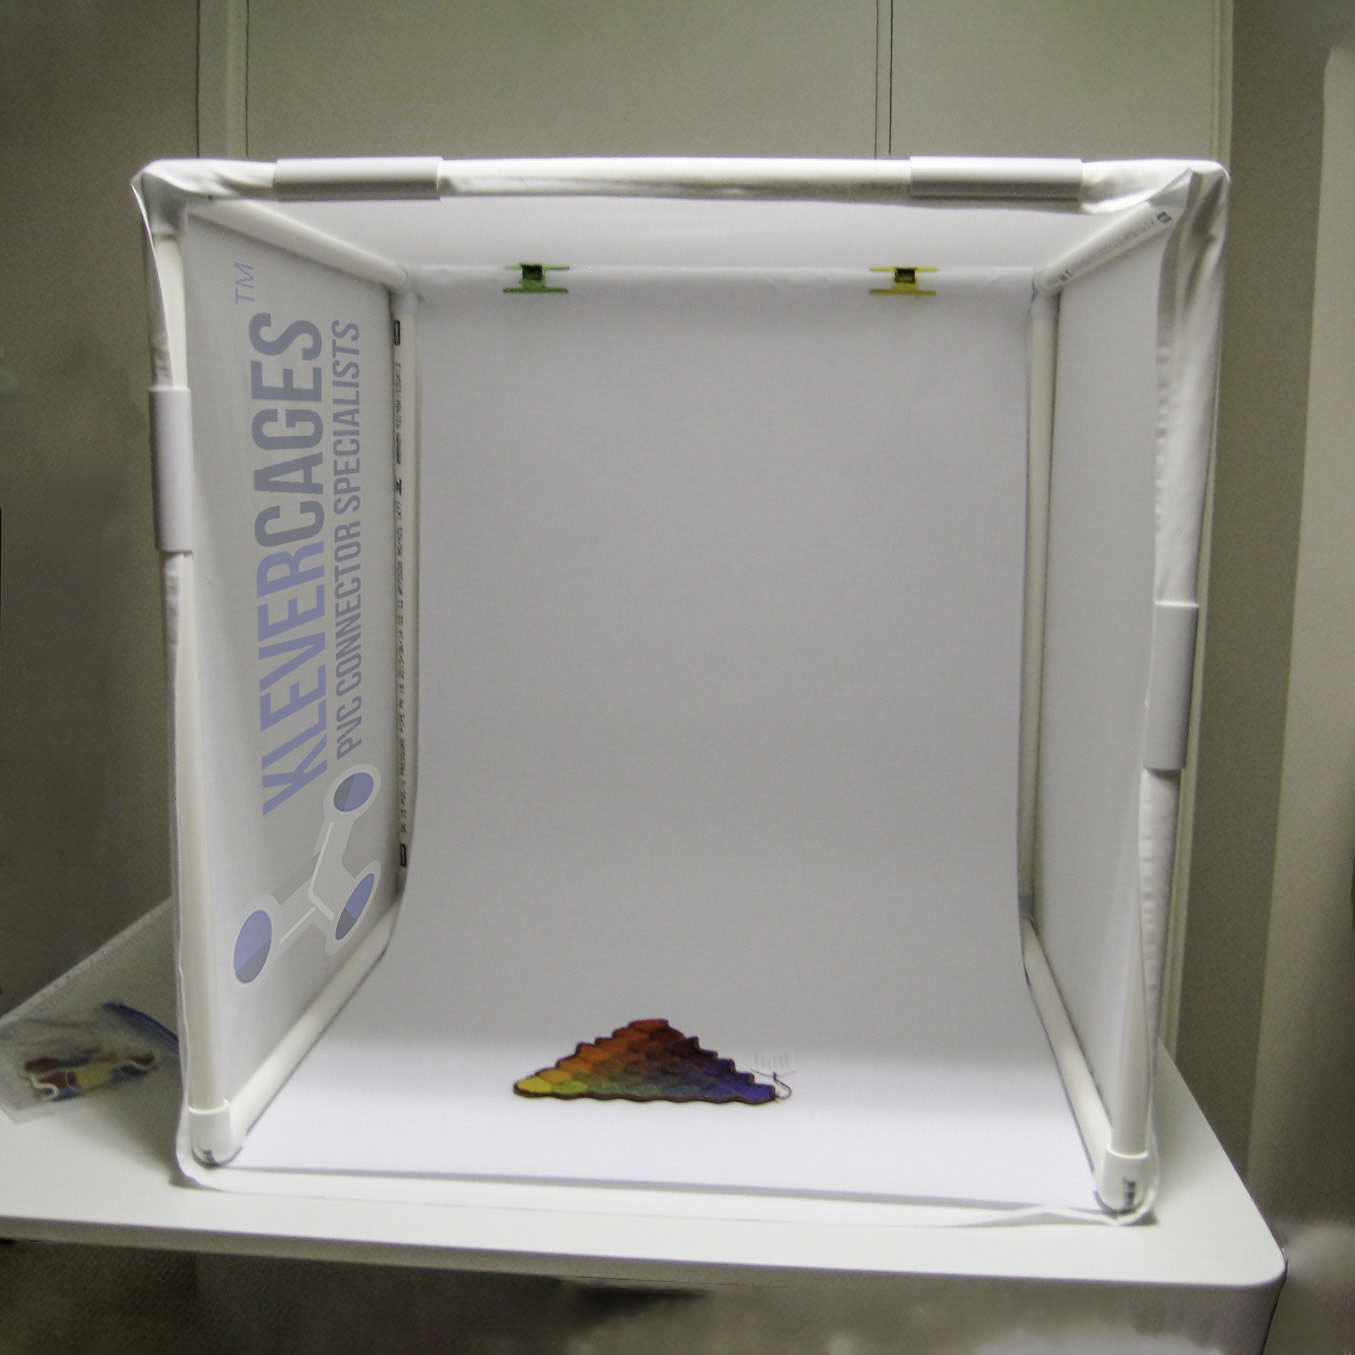 Easy to build and design photography lightbox built with 3way connectors and pipe from Klever Cages Australia